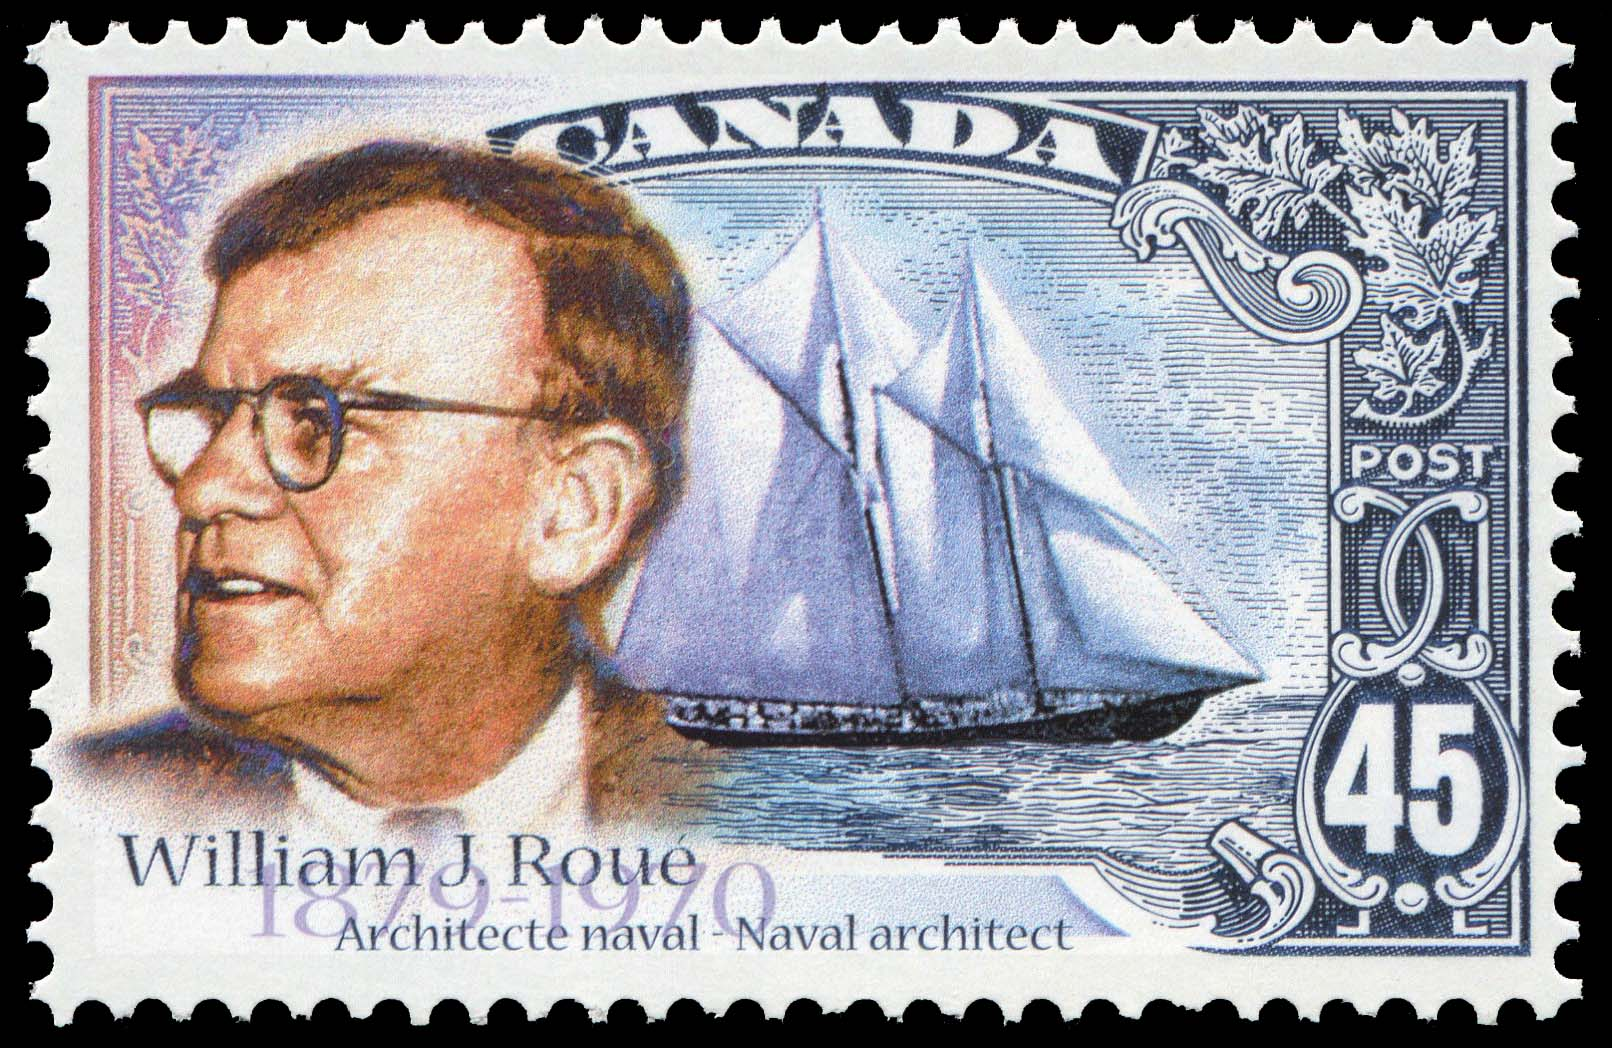 William James Roue, 1879-1970, Naval Architect Canada Postage Stamp